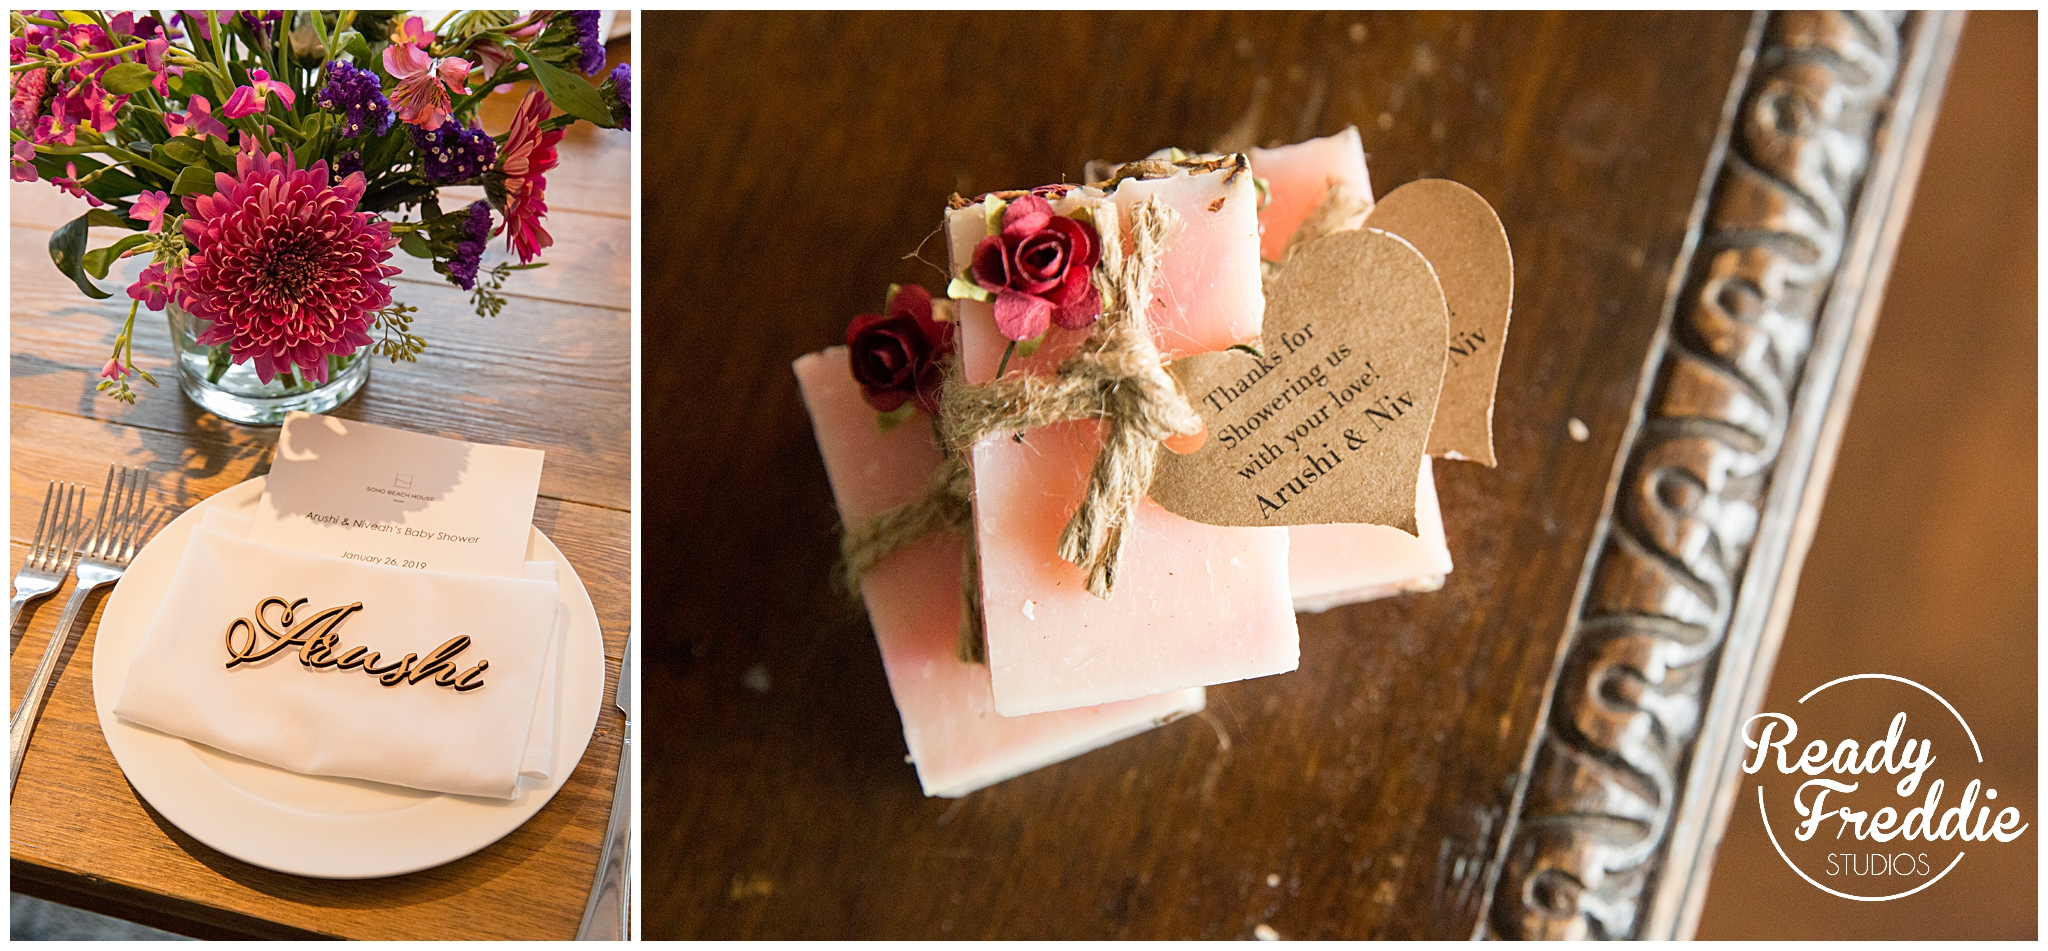 Party Favors for baby shower, wooden name and soap